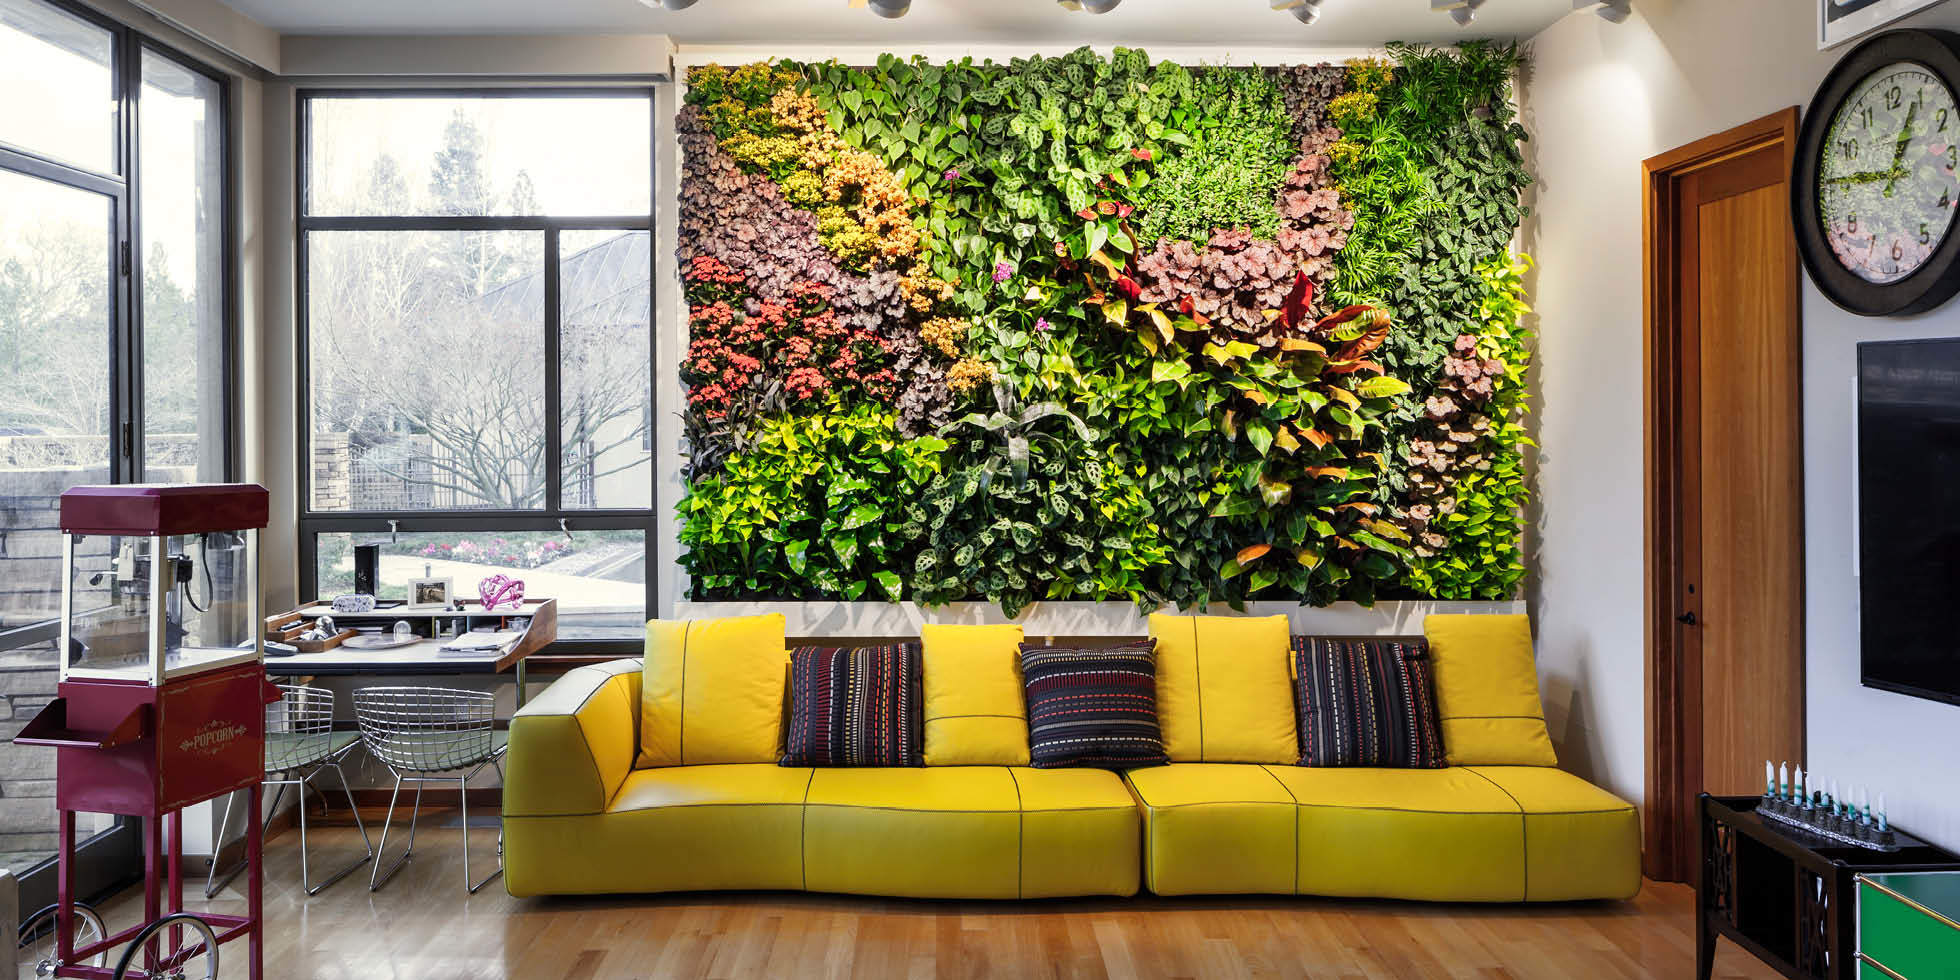 Diller Residence Living Wall by Habitat Horticulture - View 1